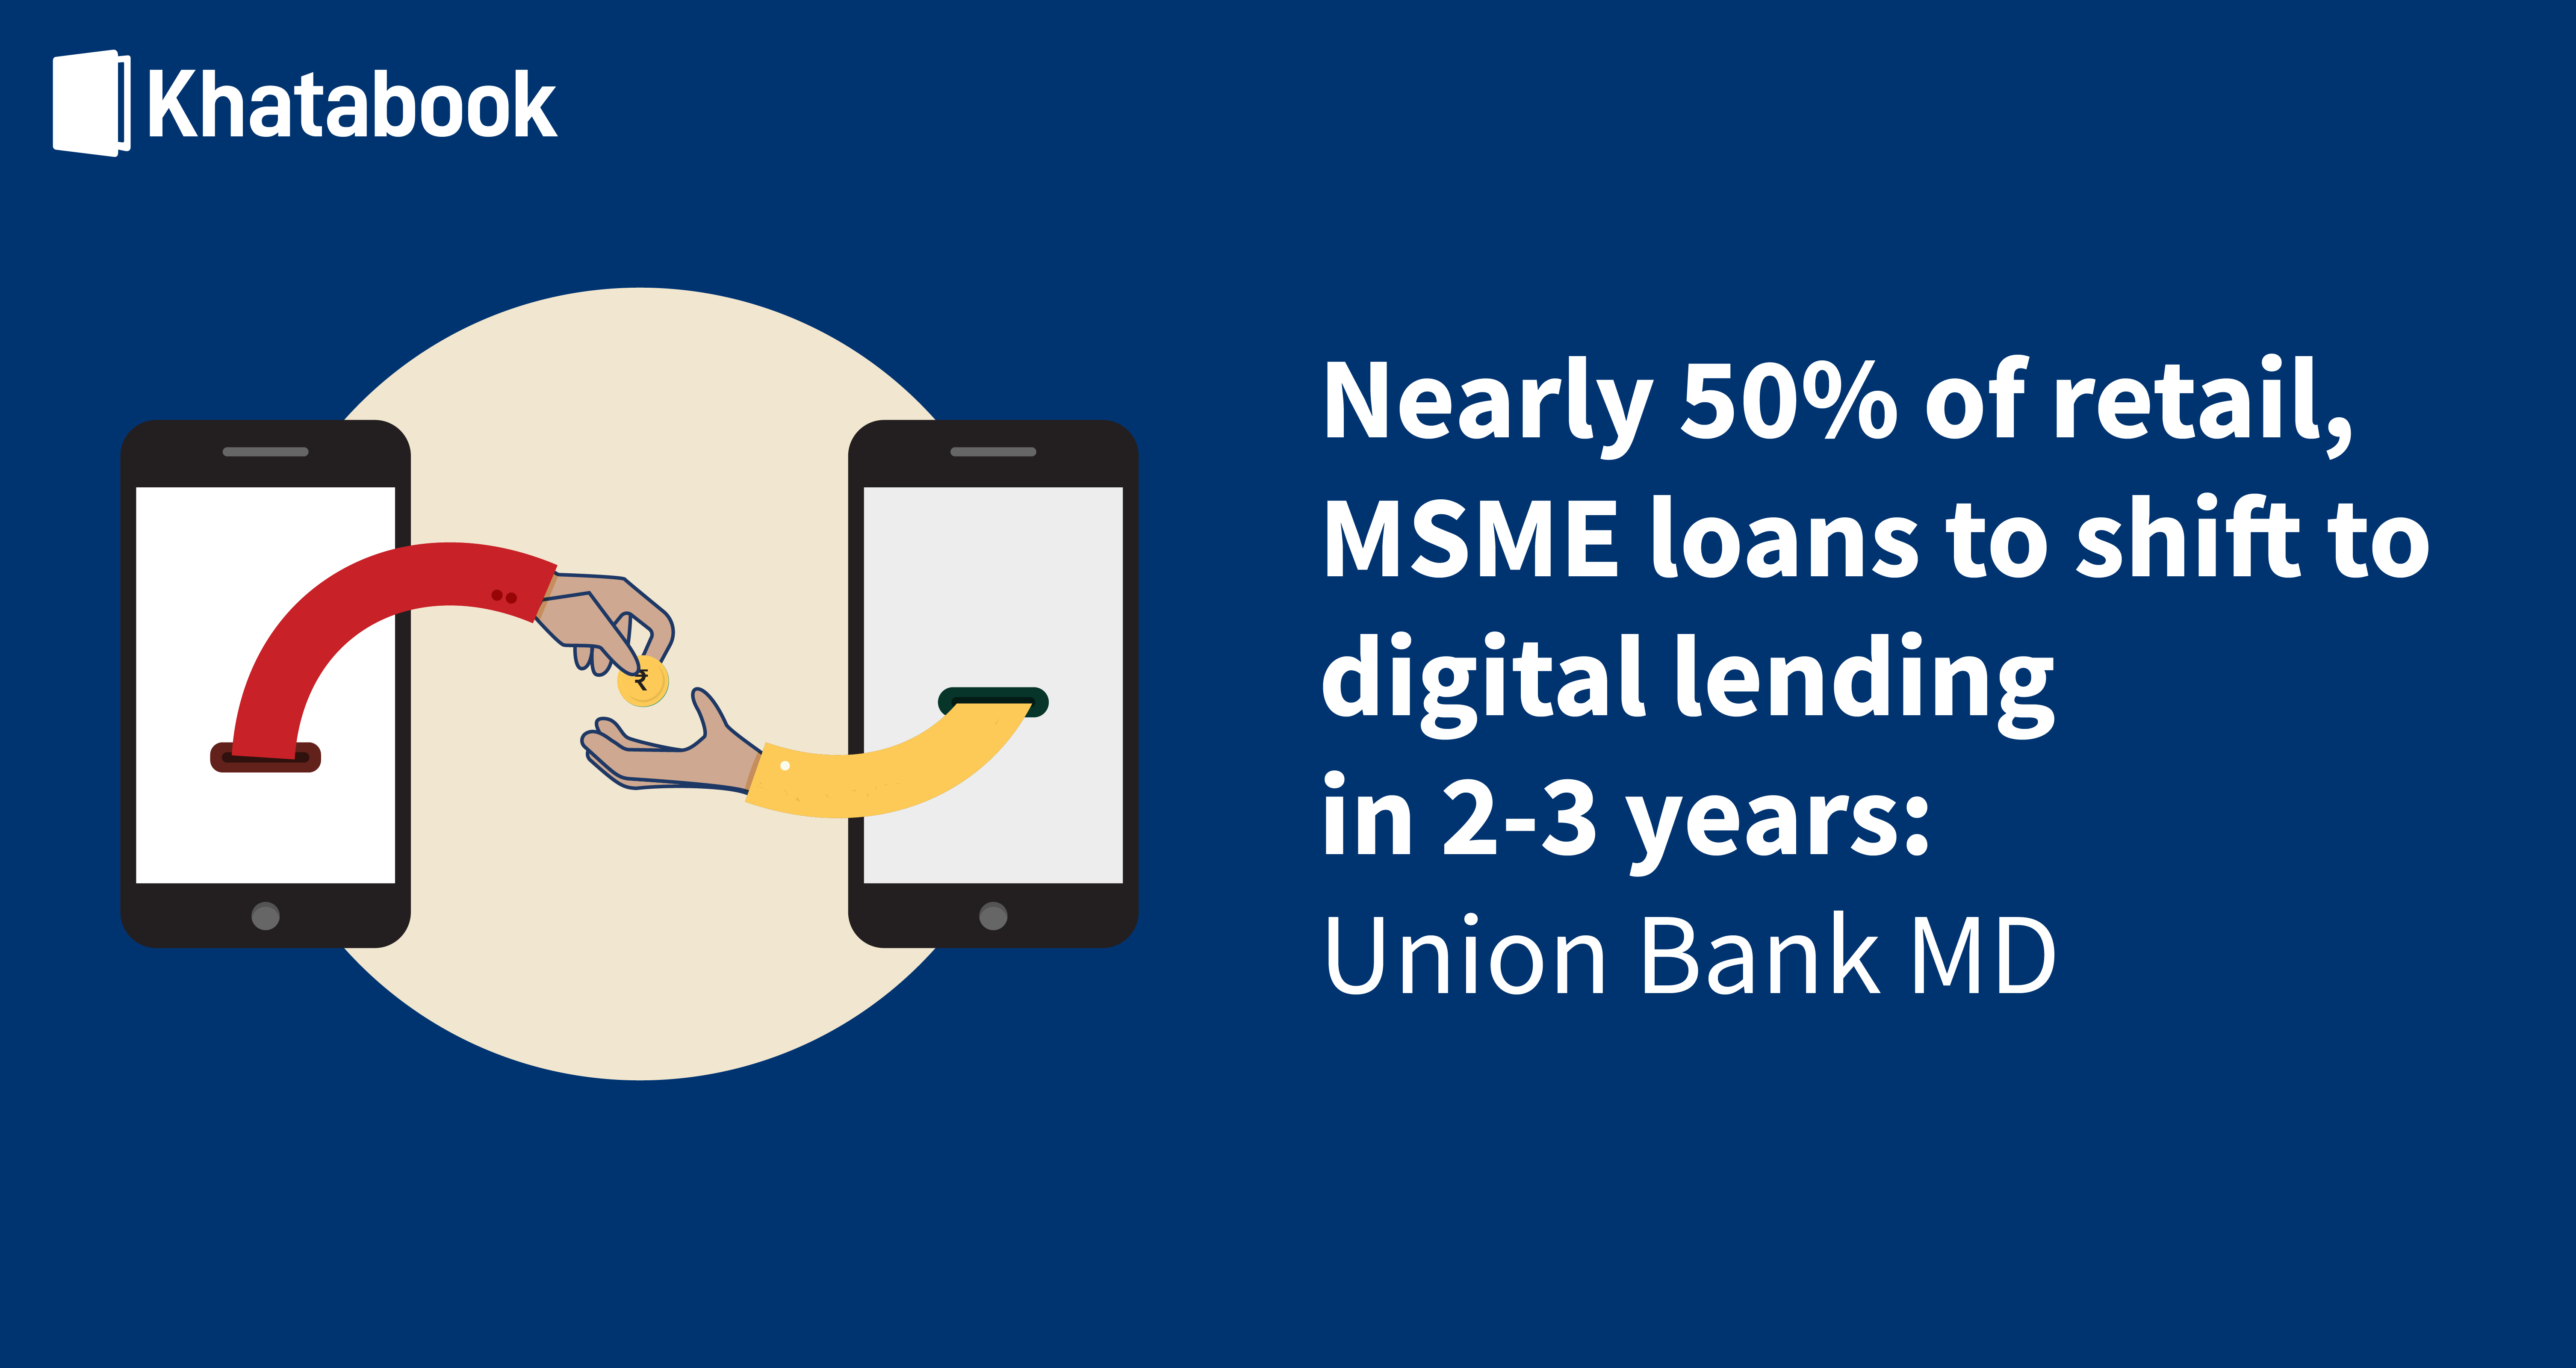 Nearly 50% of retail, MSME loans to shift to digital lending in 2-3 years: Union Bank MD